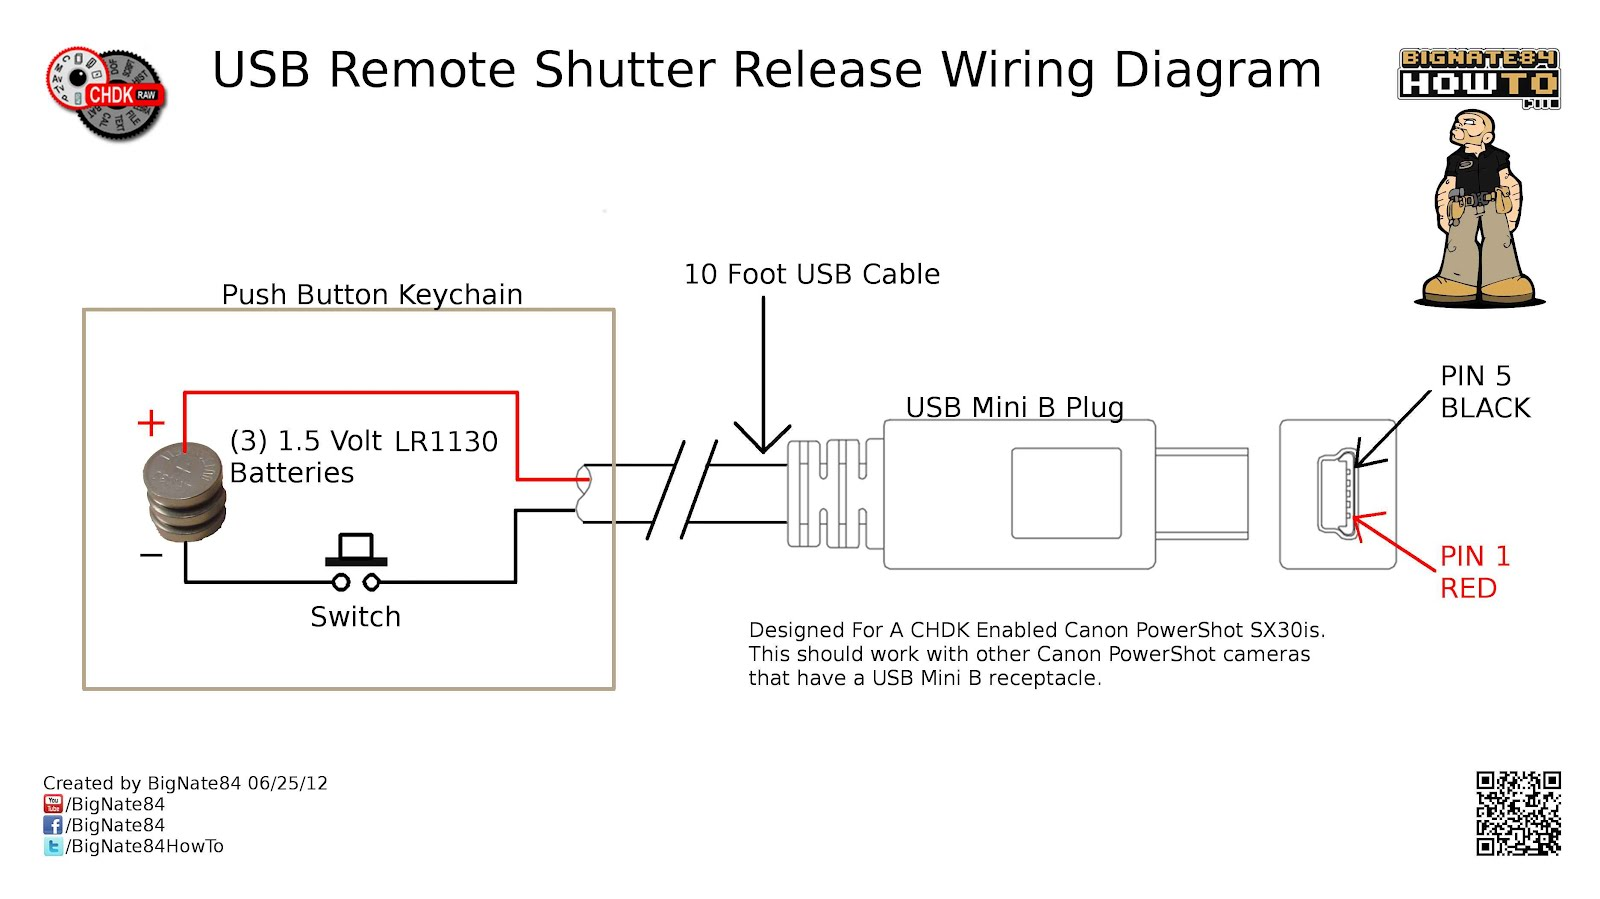 latest?cb=20120809225626 image 0001 usb remote shutter wiring diagram 1 jpeg chdk wiki wiring diagram for usb cable at bayanpartner.co